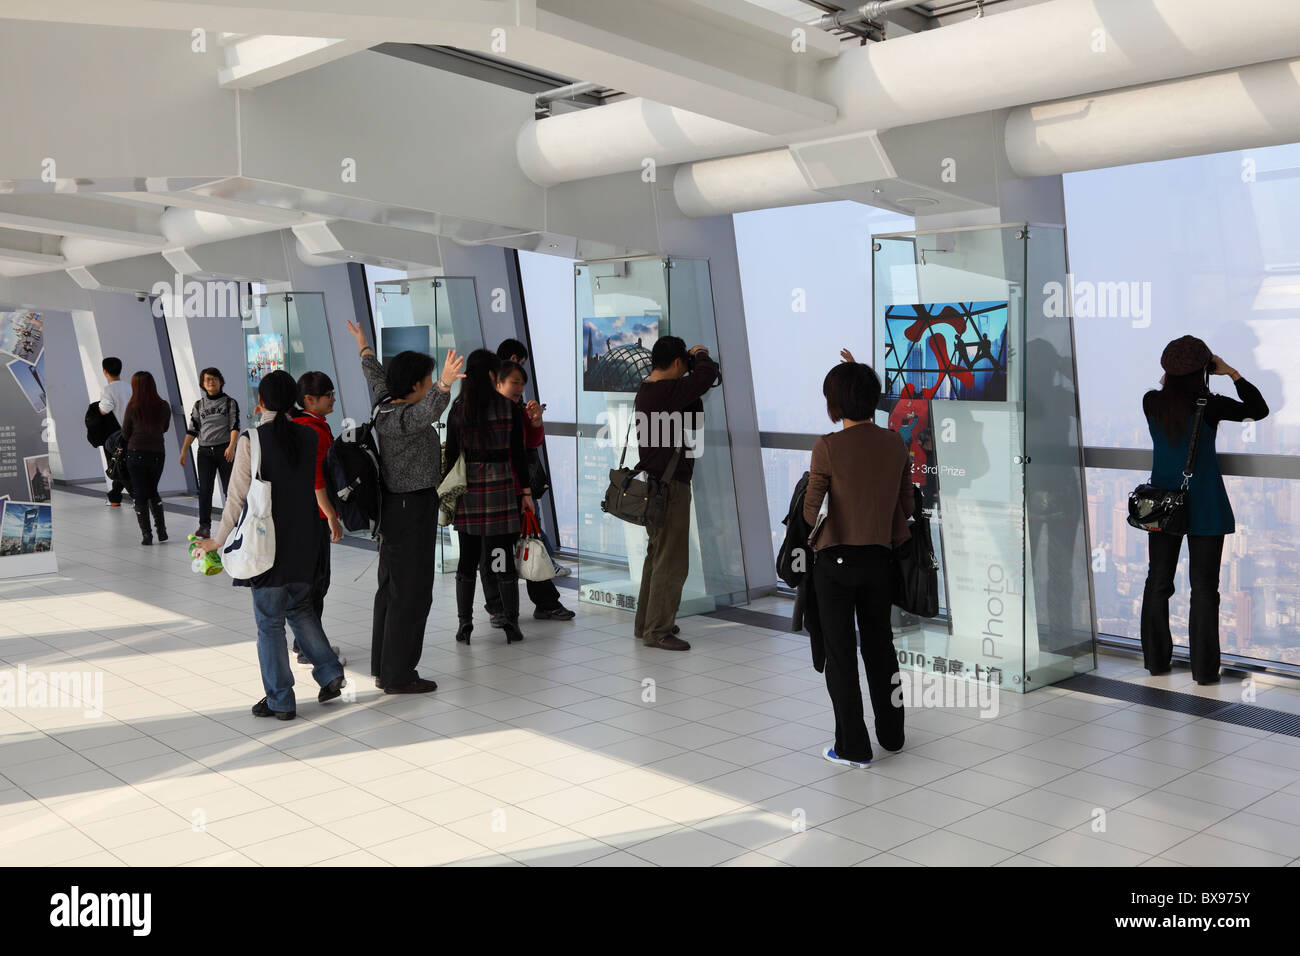 Inside of the Observation Deck of Shanghai World Financial Center (SWFC), Pudong Shanghai China. - Stock Image